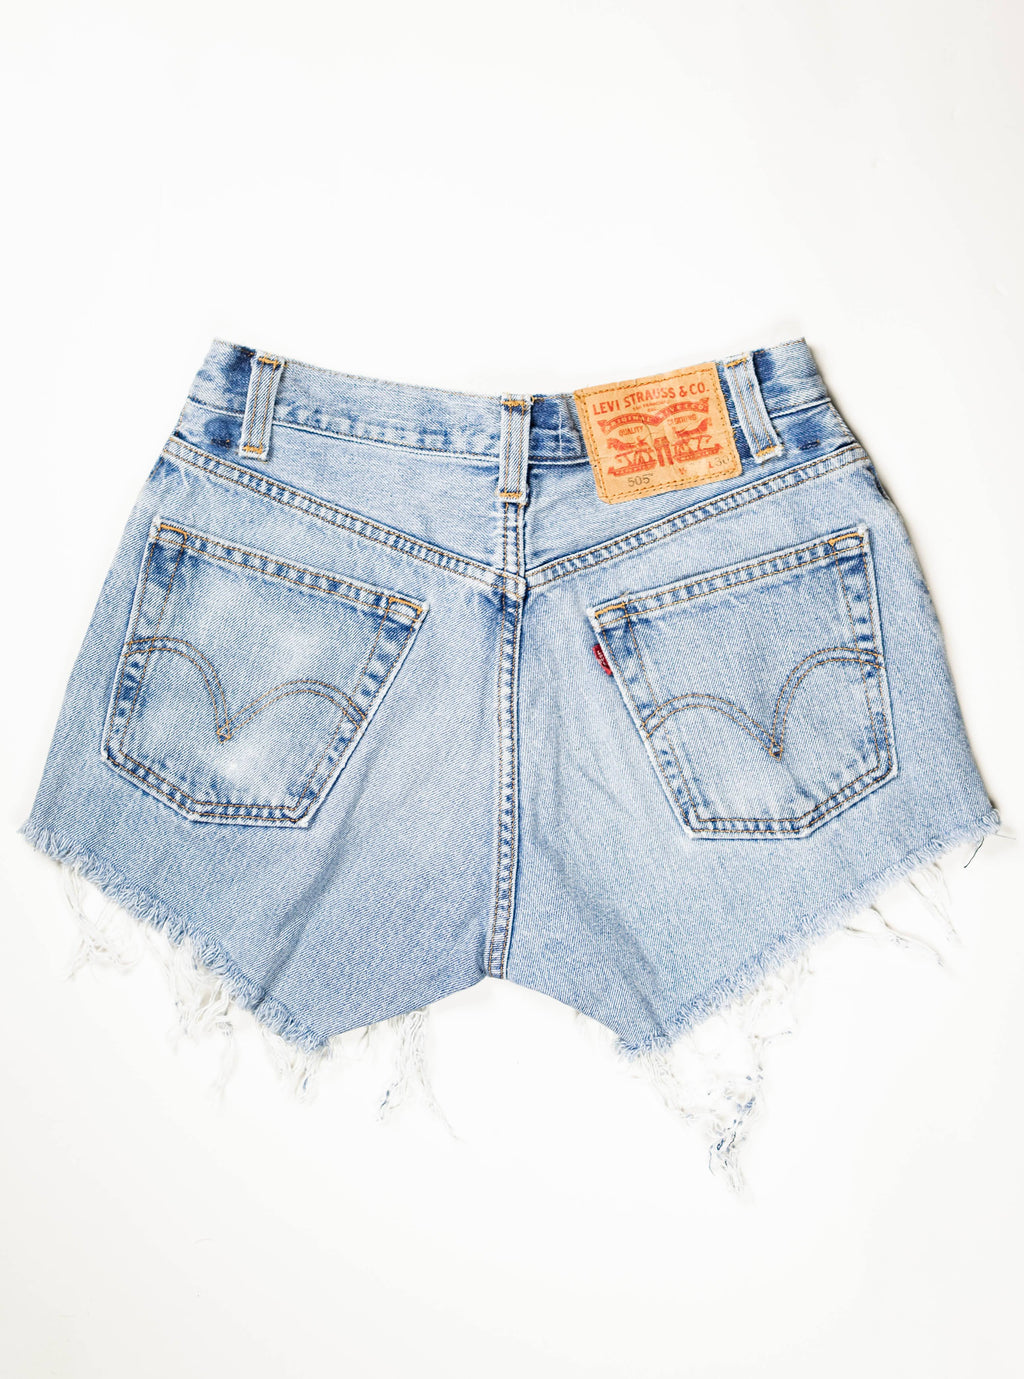 Reworked Vintage Cutoff Levi Jean Short - 29